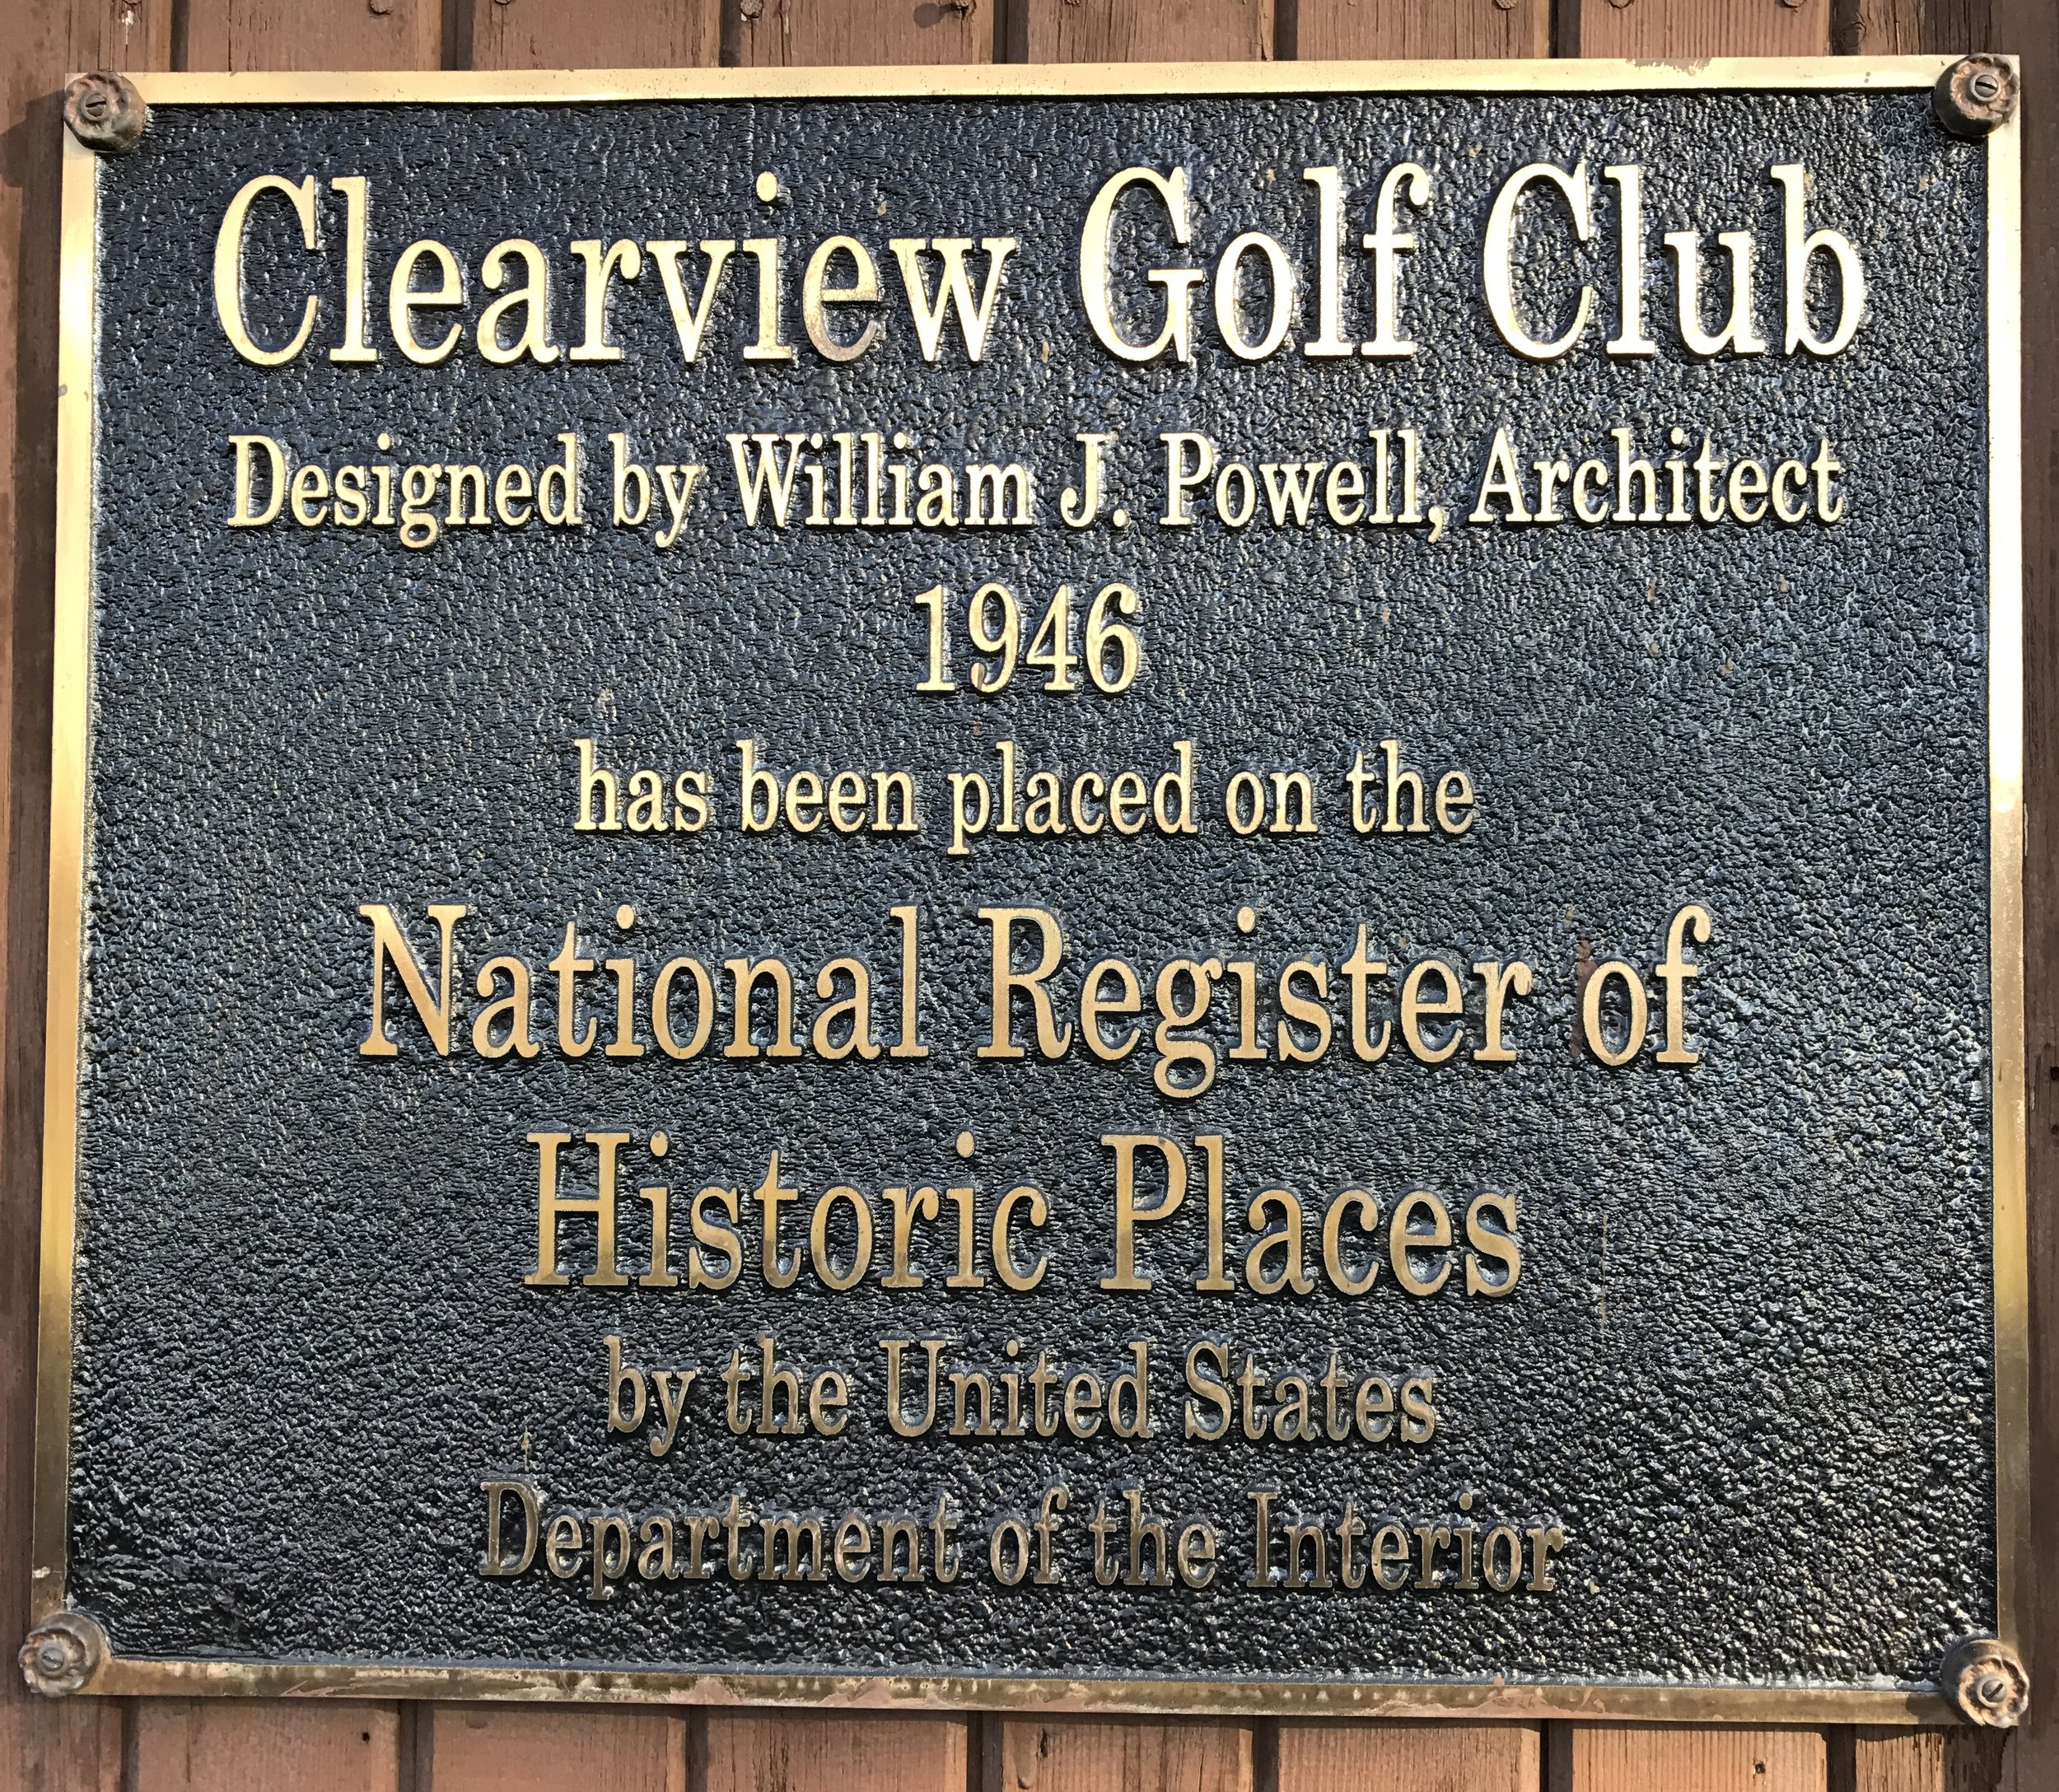 Clearview Golf Club was placed on the National Register of Historic Places by the U.S. Department of the Interior in 2001.